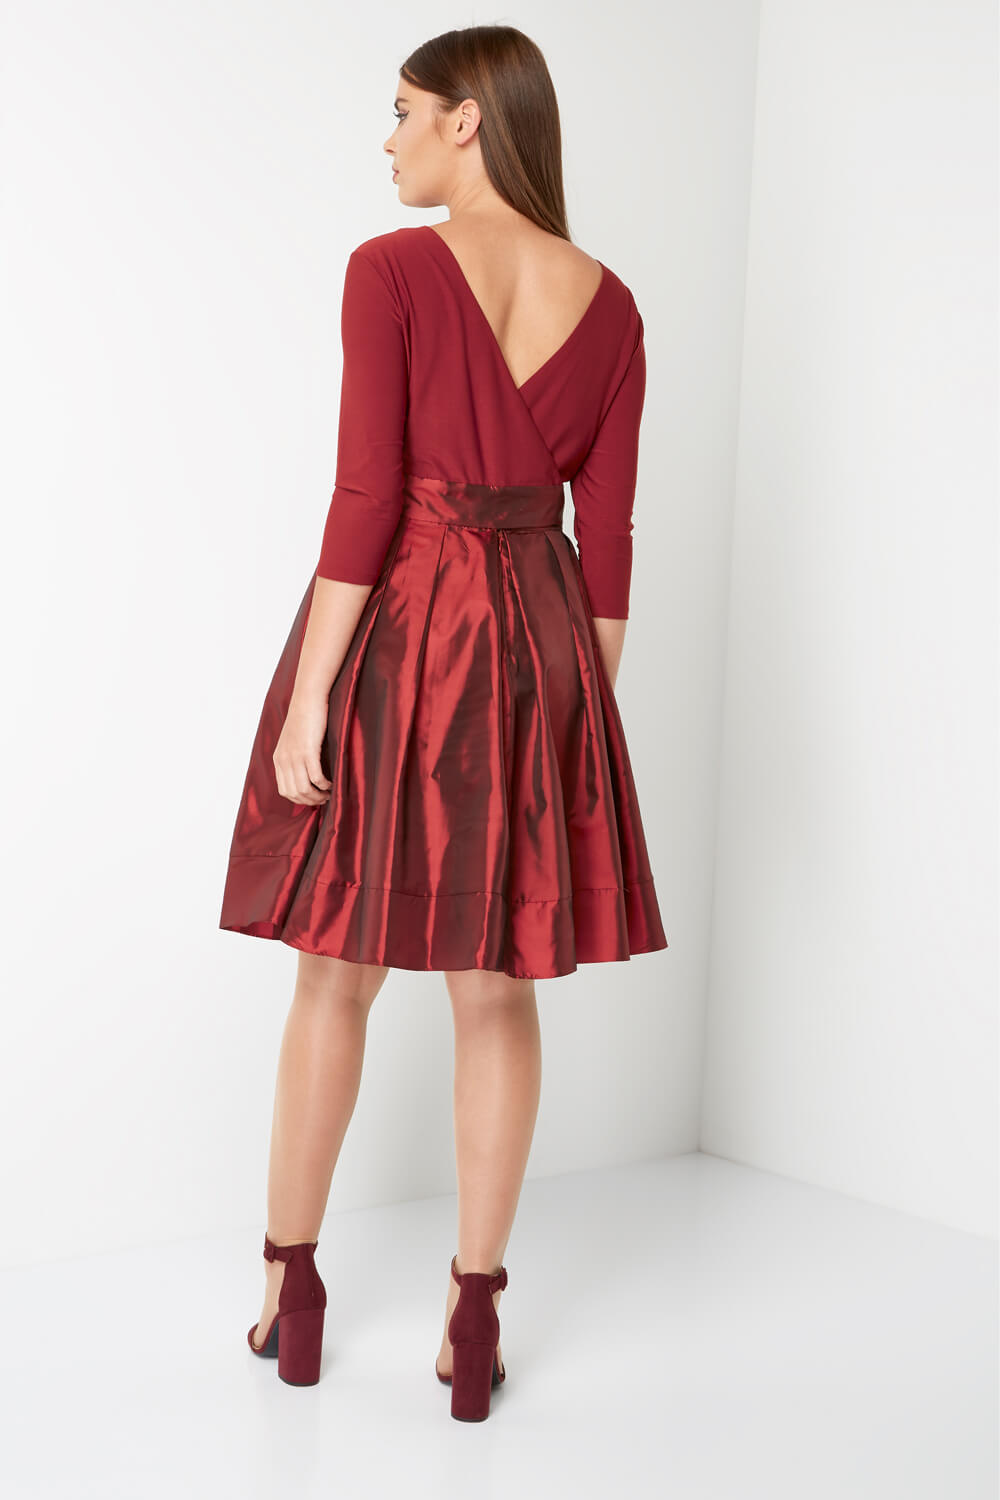 Roman-Originals-Women-039-s-Red-Fit-and-Flare-Dress-Sizes-10-20 thumbnail 9